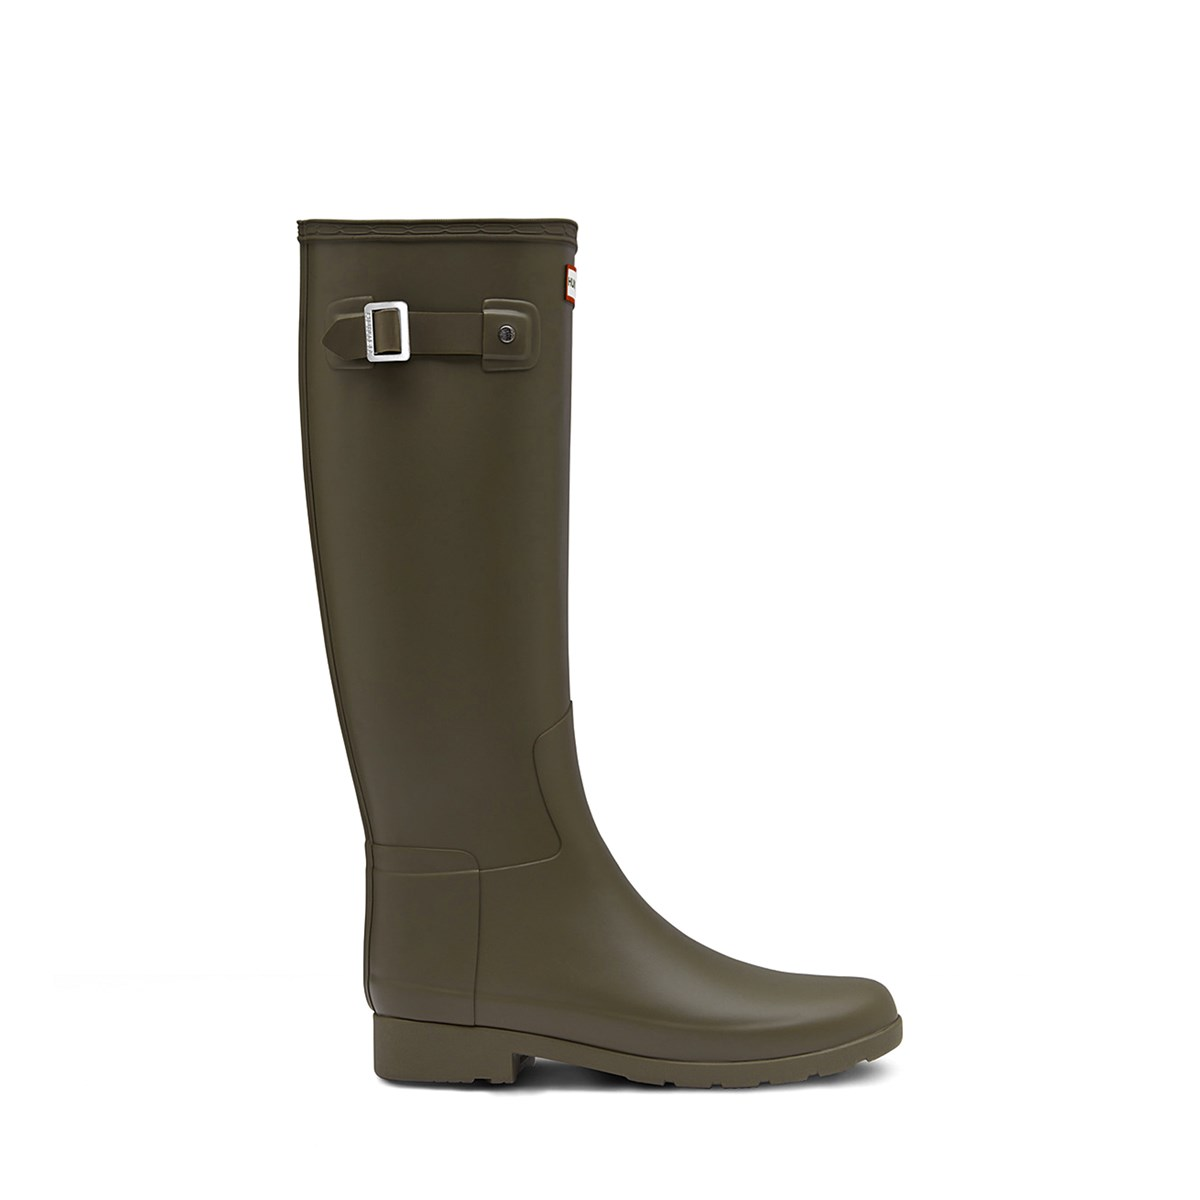 Women's Original Green Tall Refined Rain Boots